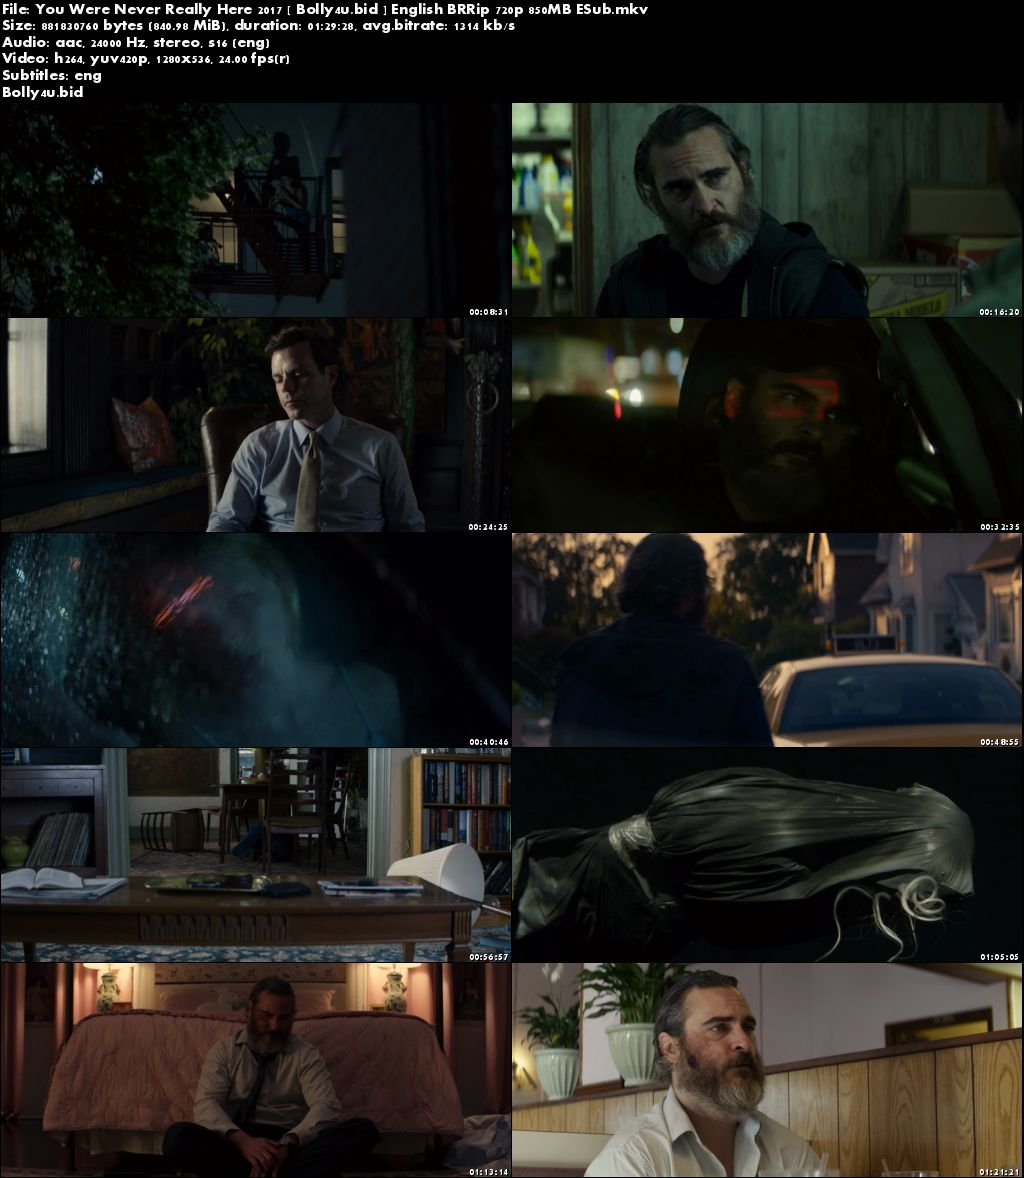 You Were Never Really Here 2017 BluRay 850MB English 720p ESub Download